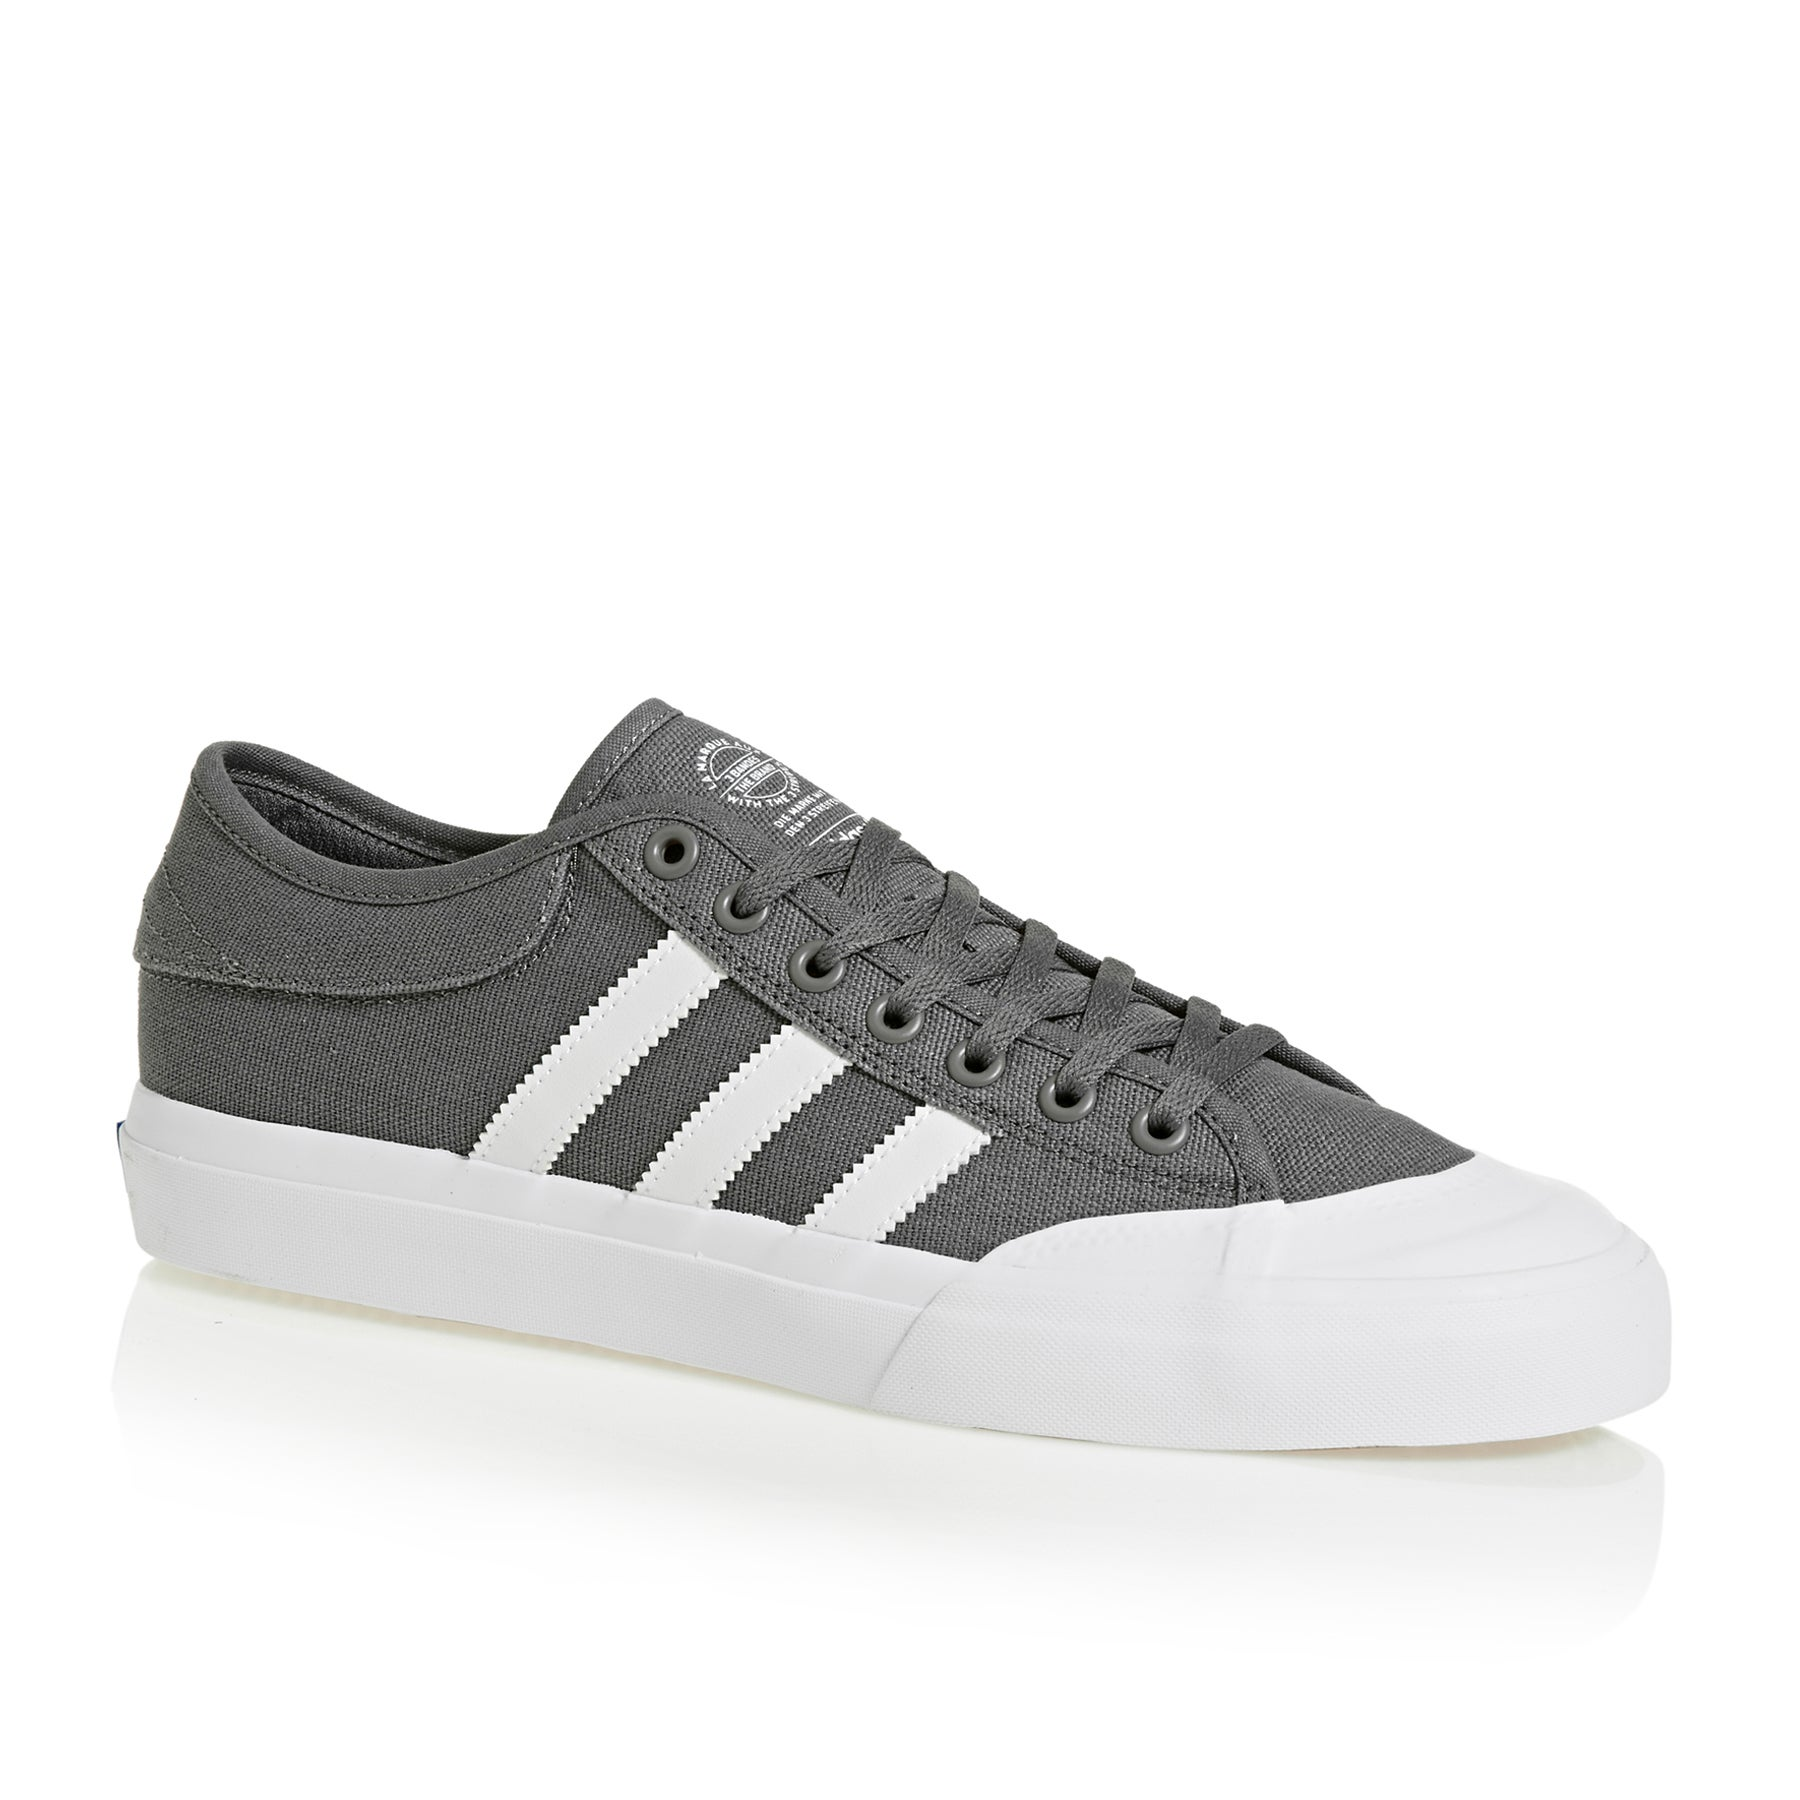 Adidas Matchcourt Shoes